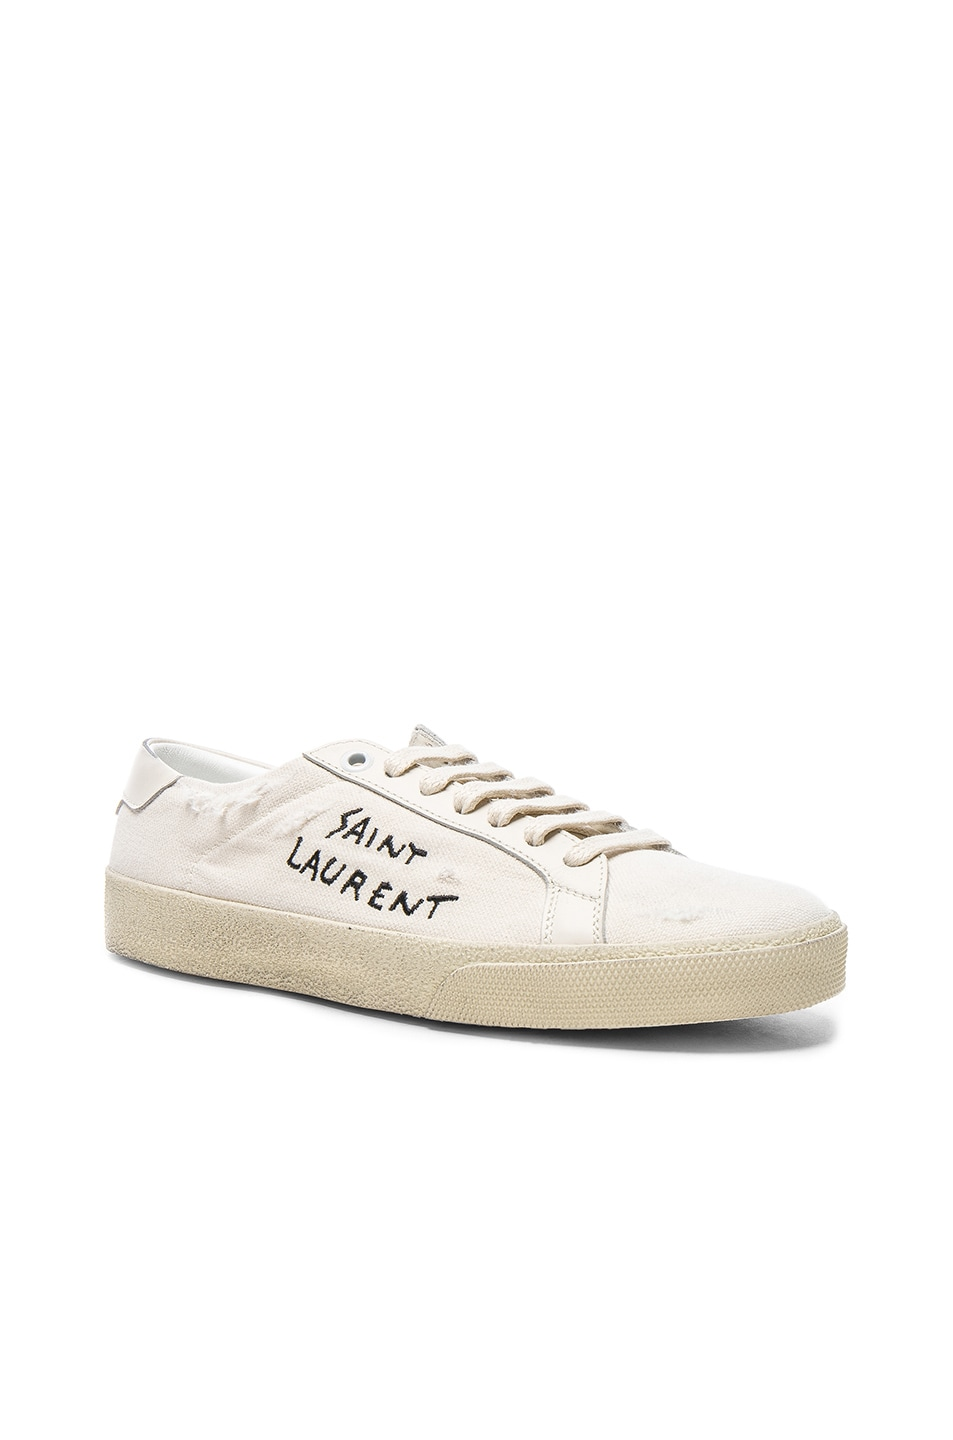 551a01db9deb Image 2 of Saint Laurent Leather Court Classic Logo Sneakers in Optic White    Black